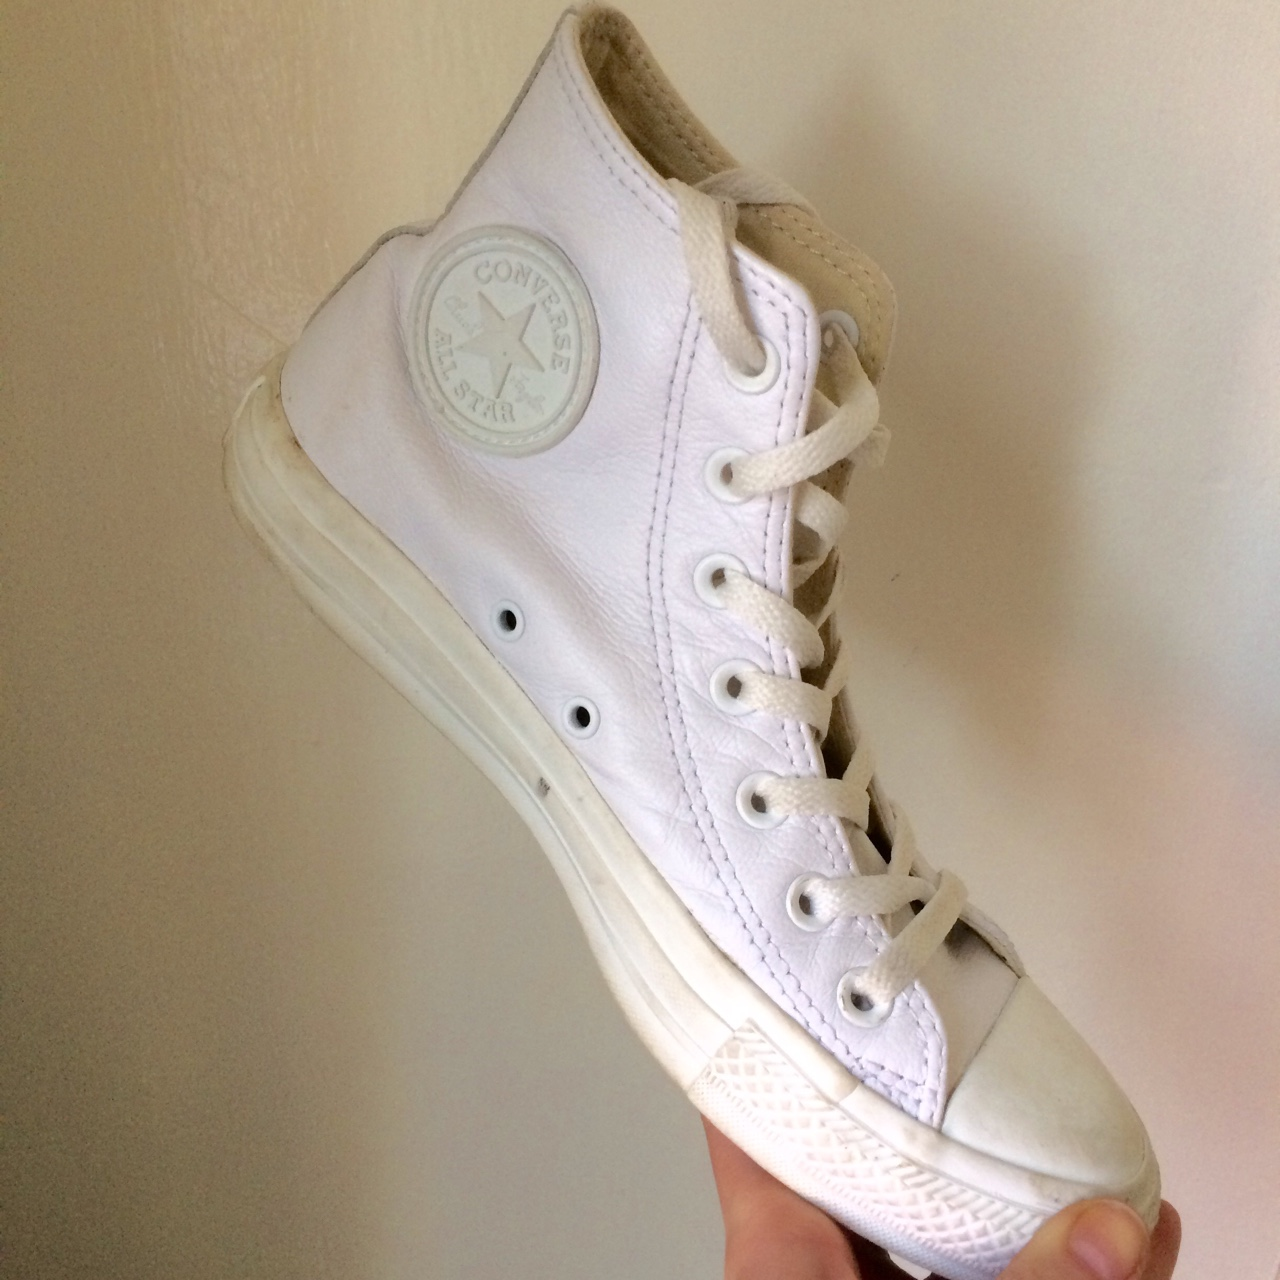 Converse Chuck Taylor white leather hi tops. Worn Depop